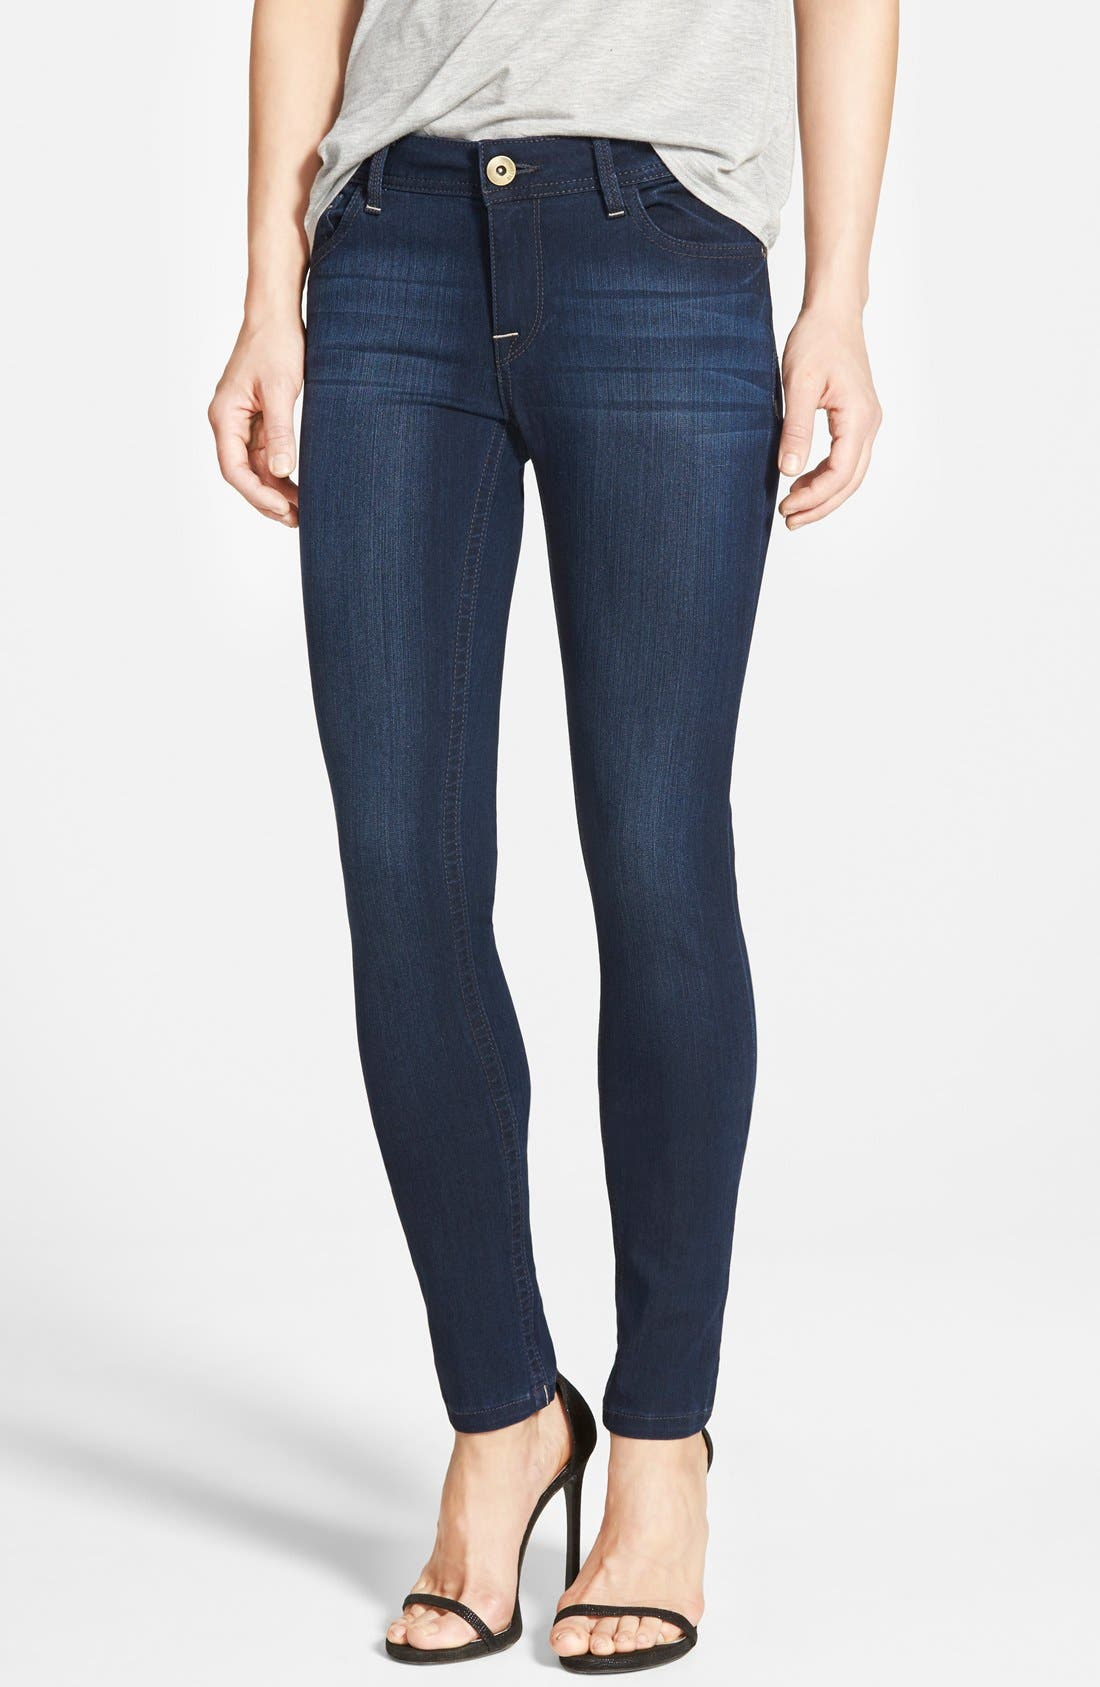 Alternate Image 1 Selected - DL1961 'Amanda' Skinny Jeans (Moscow)